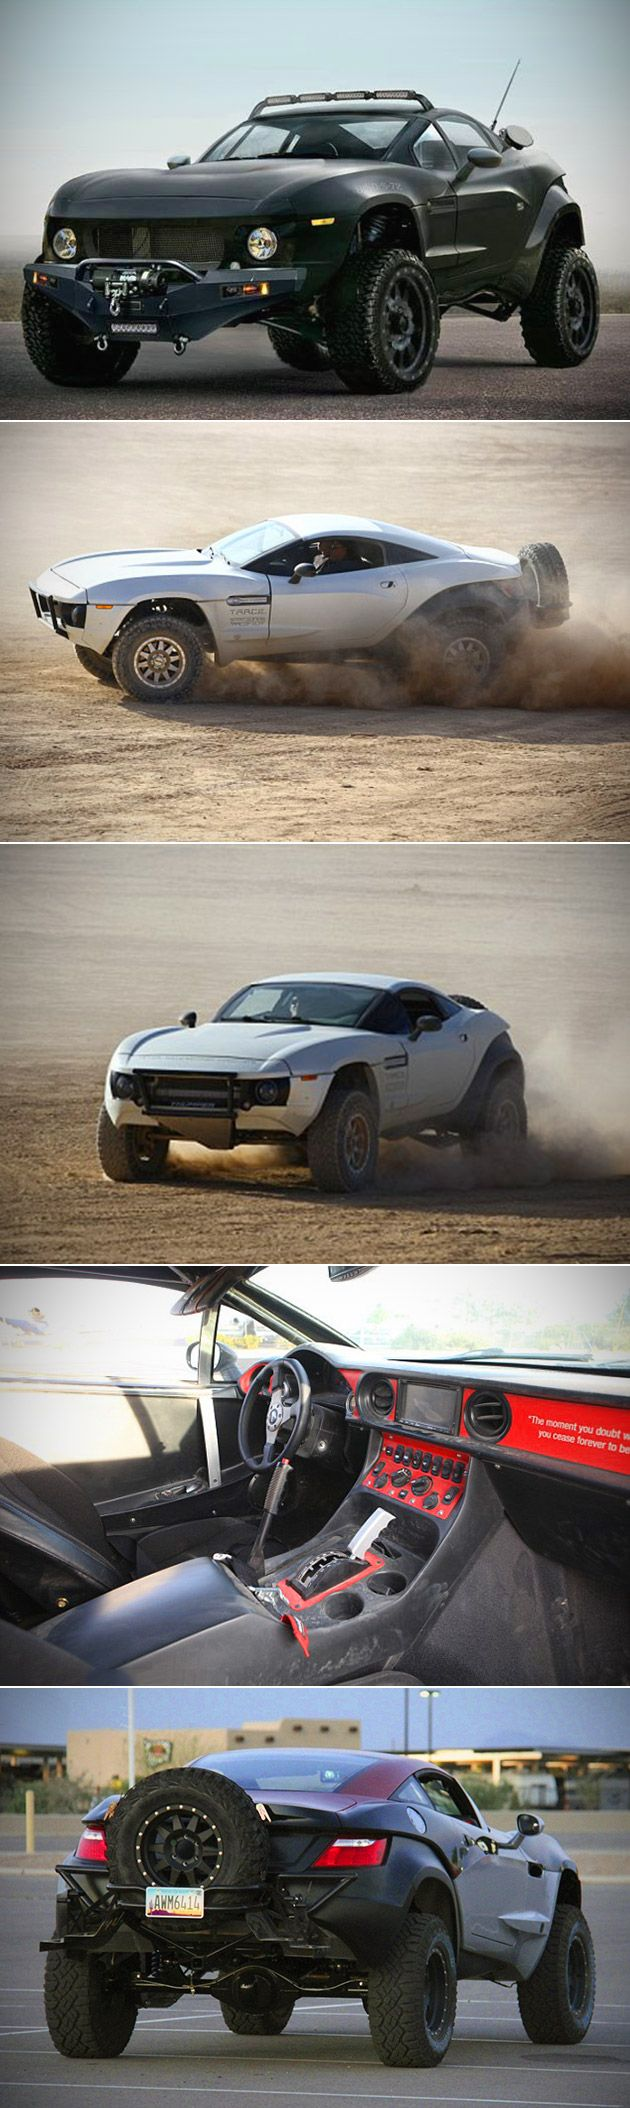 1000 images about offroad on pinterest vehicles 4x4 and concept cars. Black Bedroom Furniture Sets. Home Design Ideas